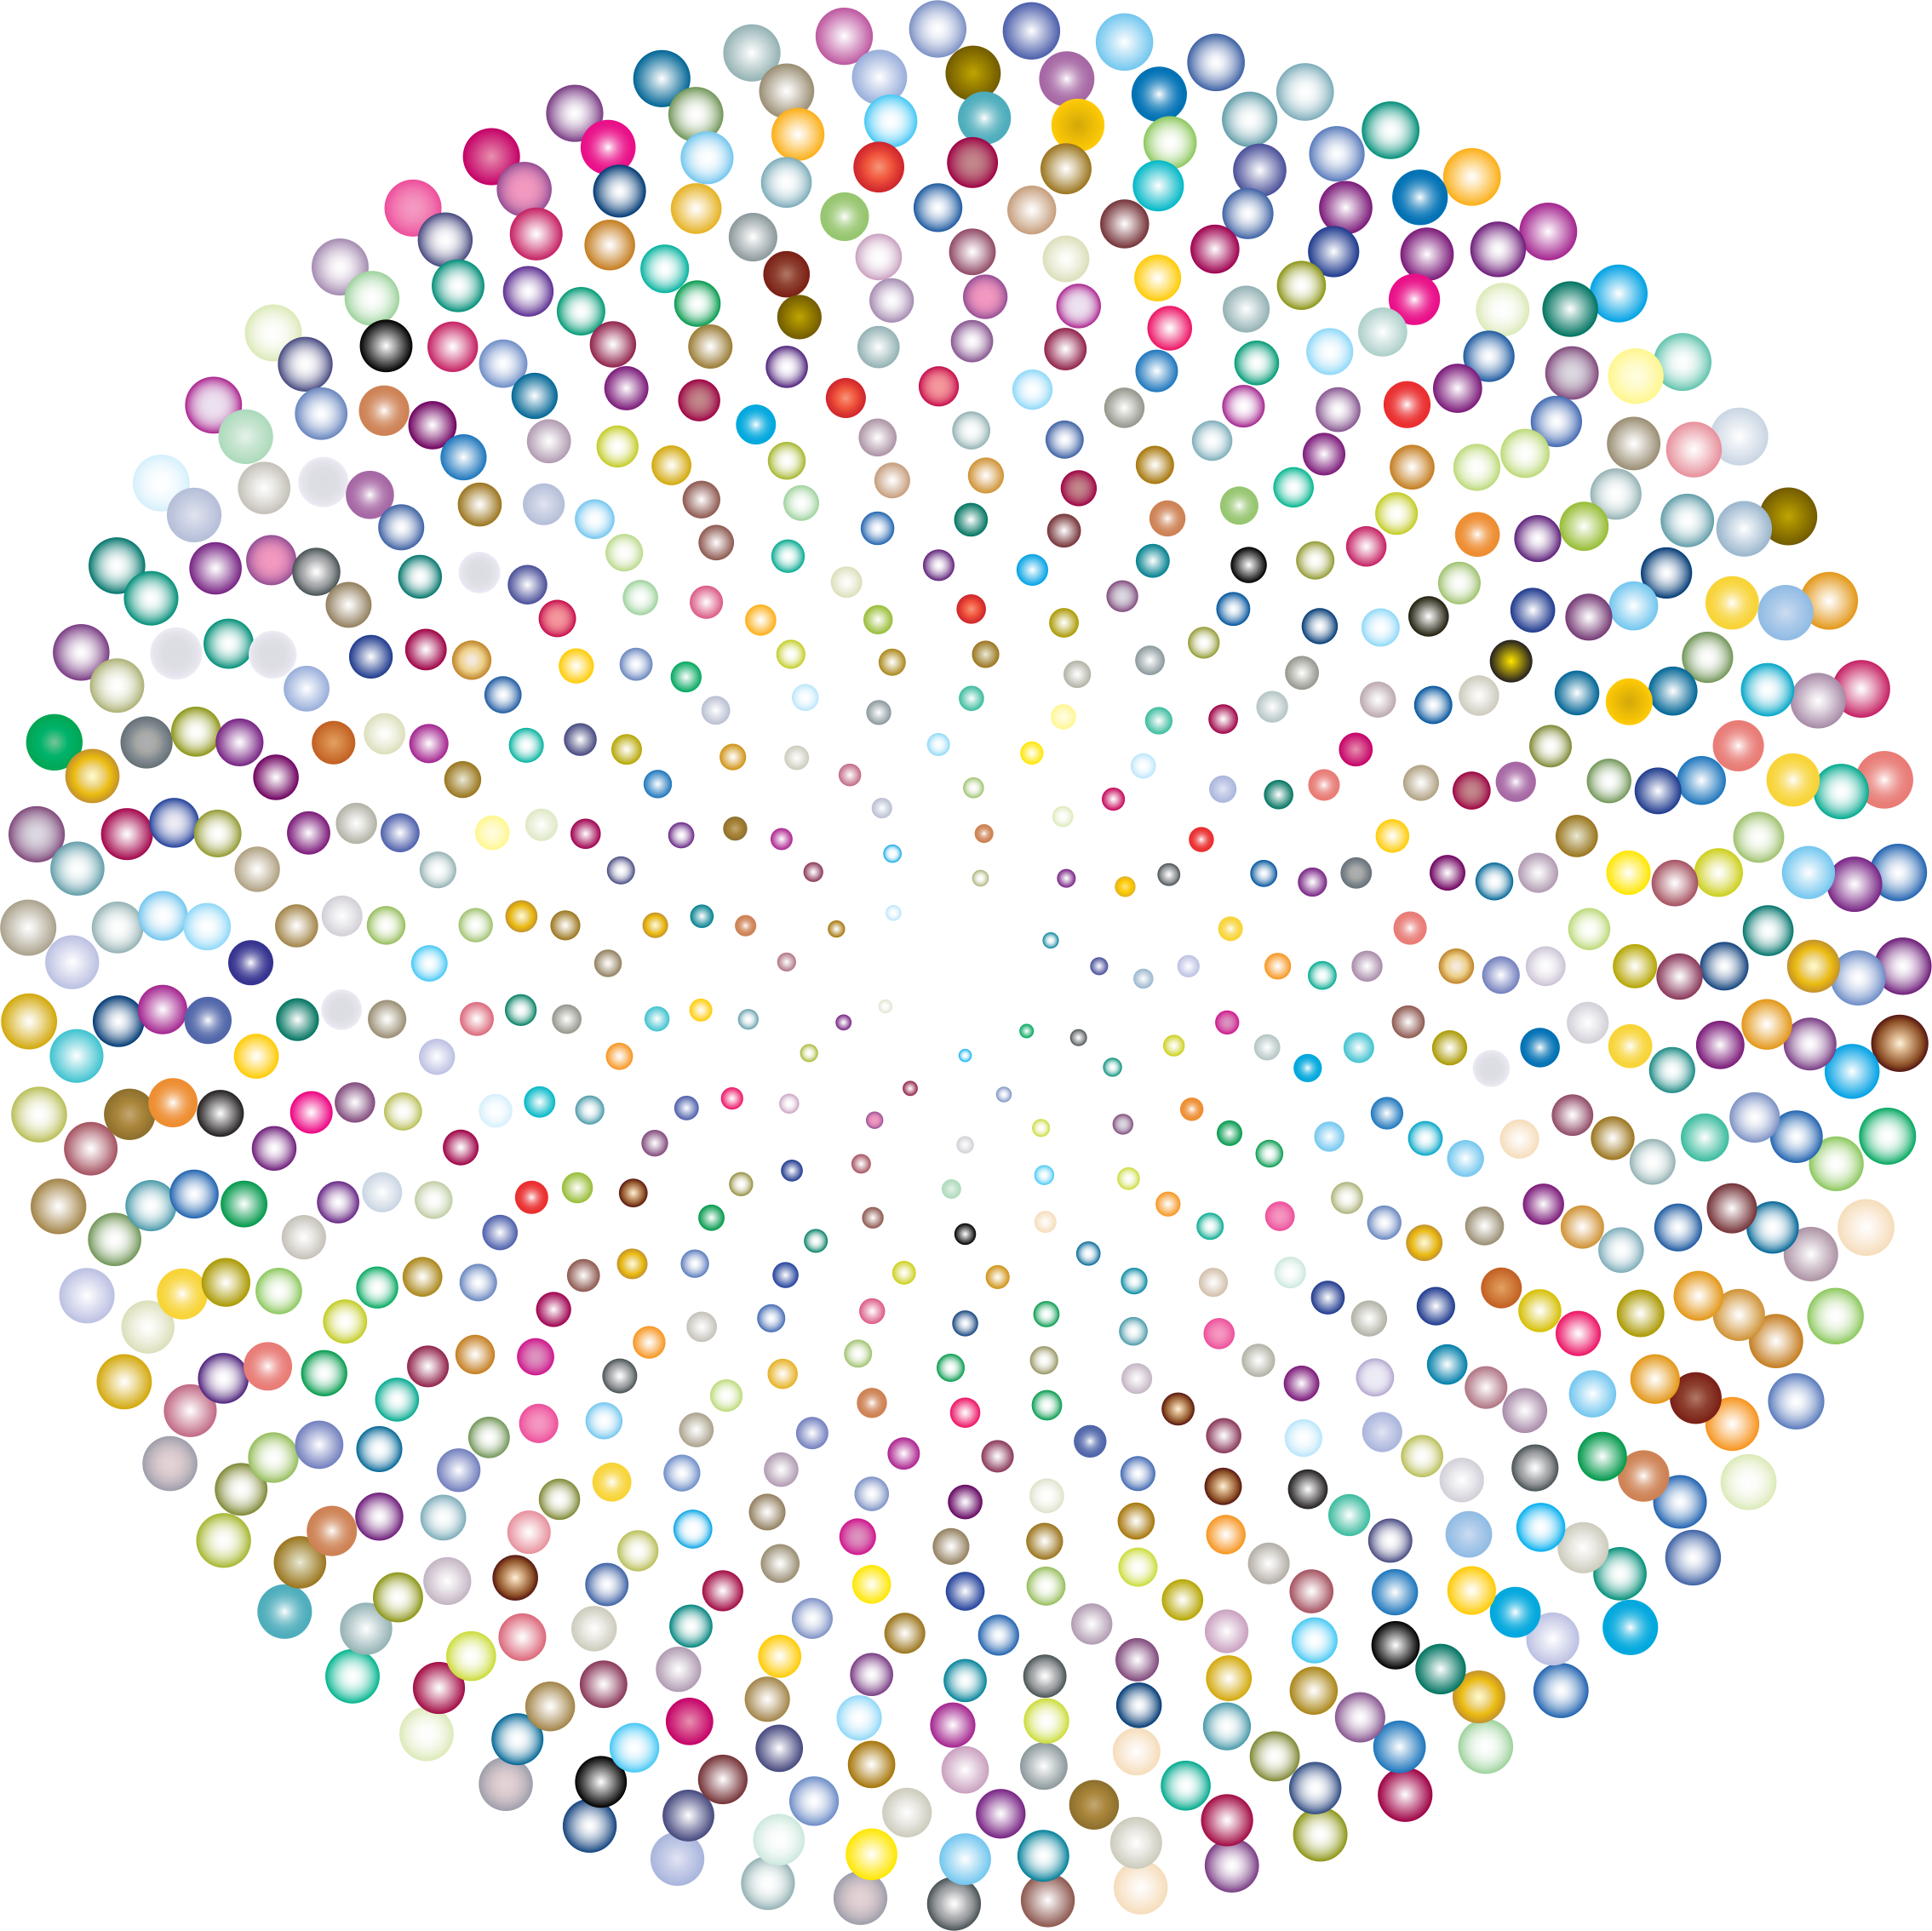 Prismatic Abstract Circles Design 3 by GDJ